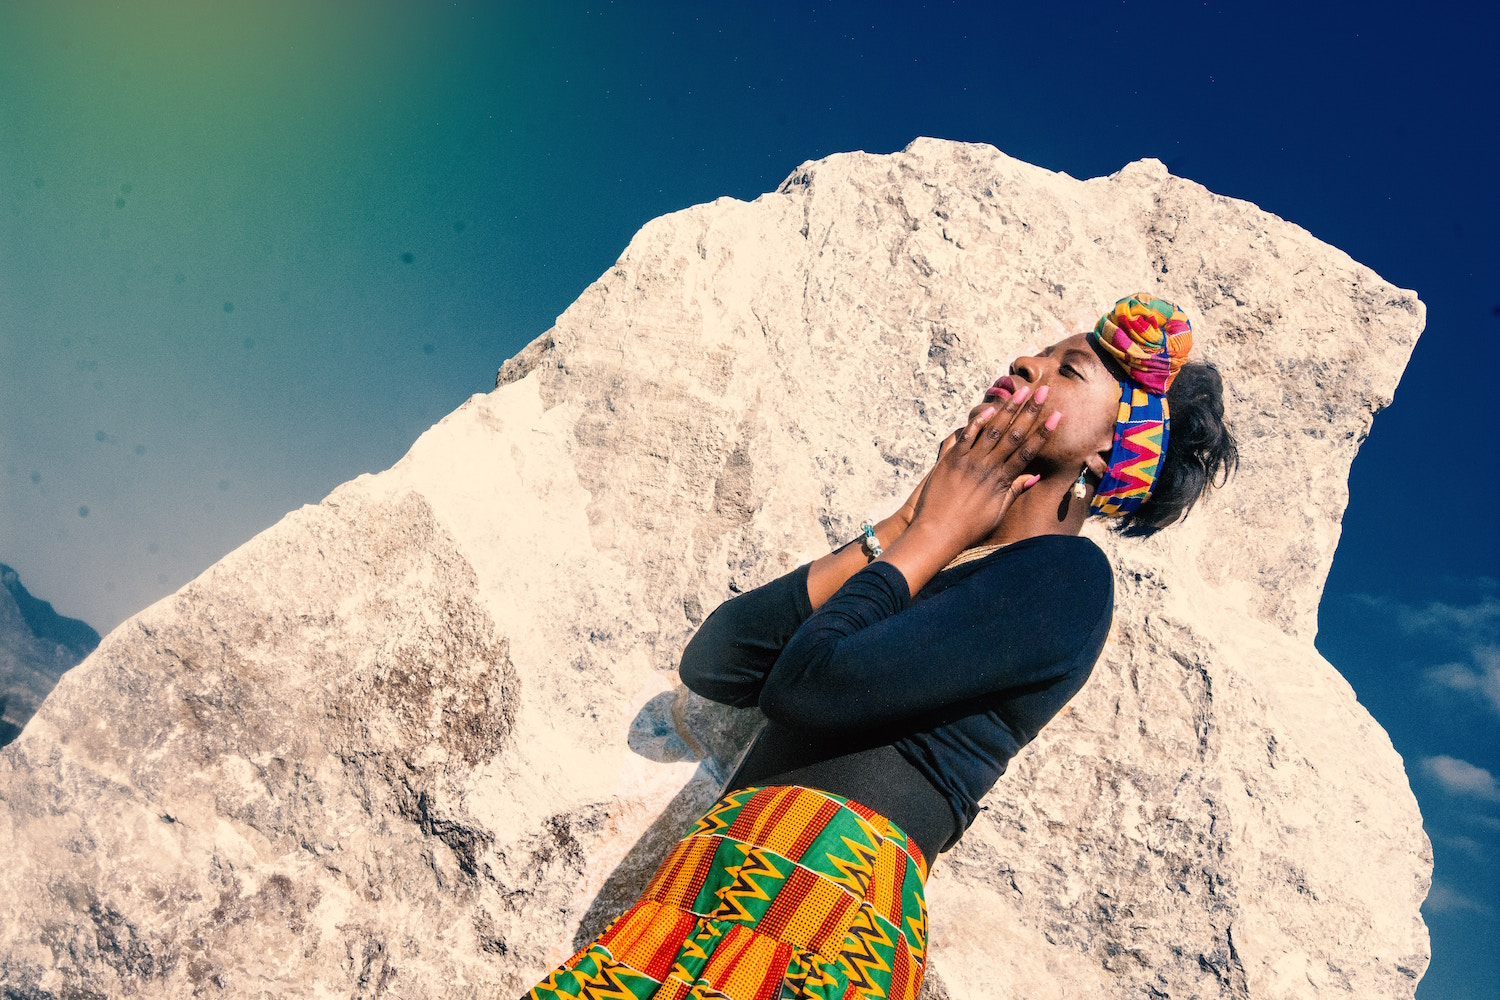 Black woman standing in front of a rock face